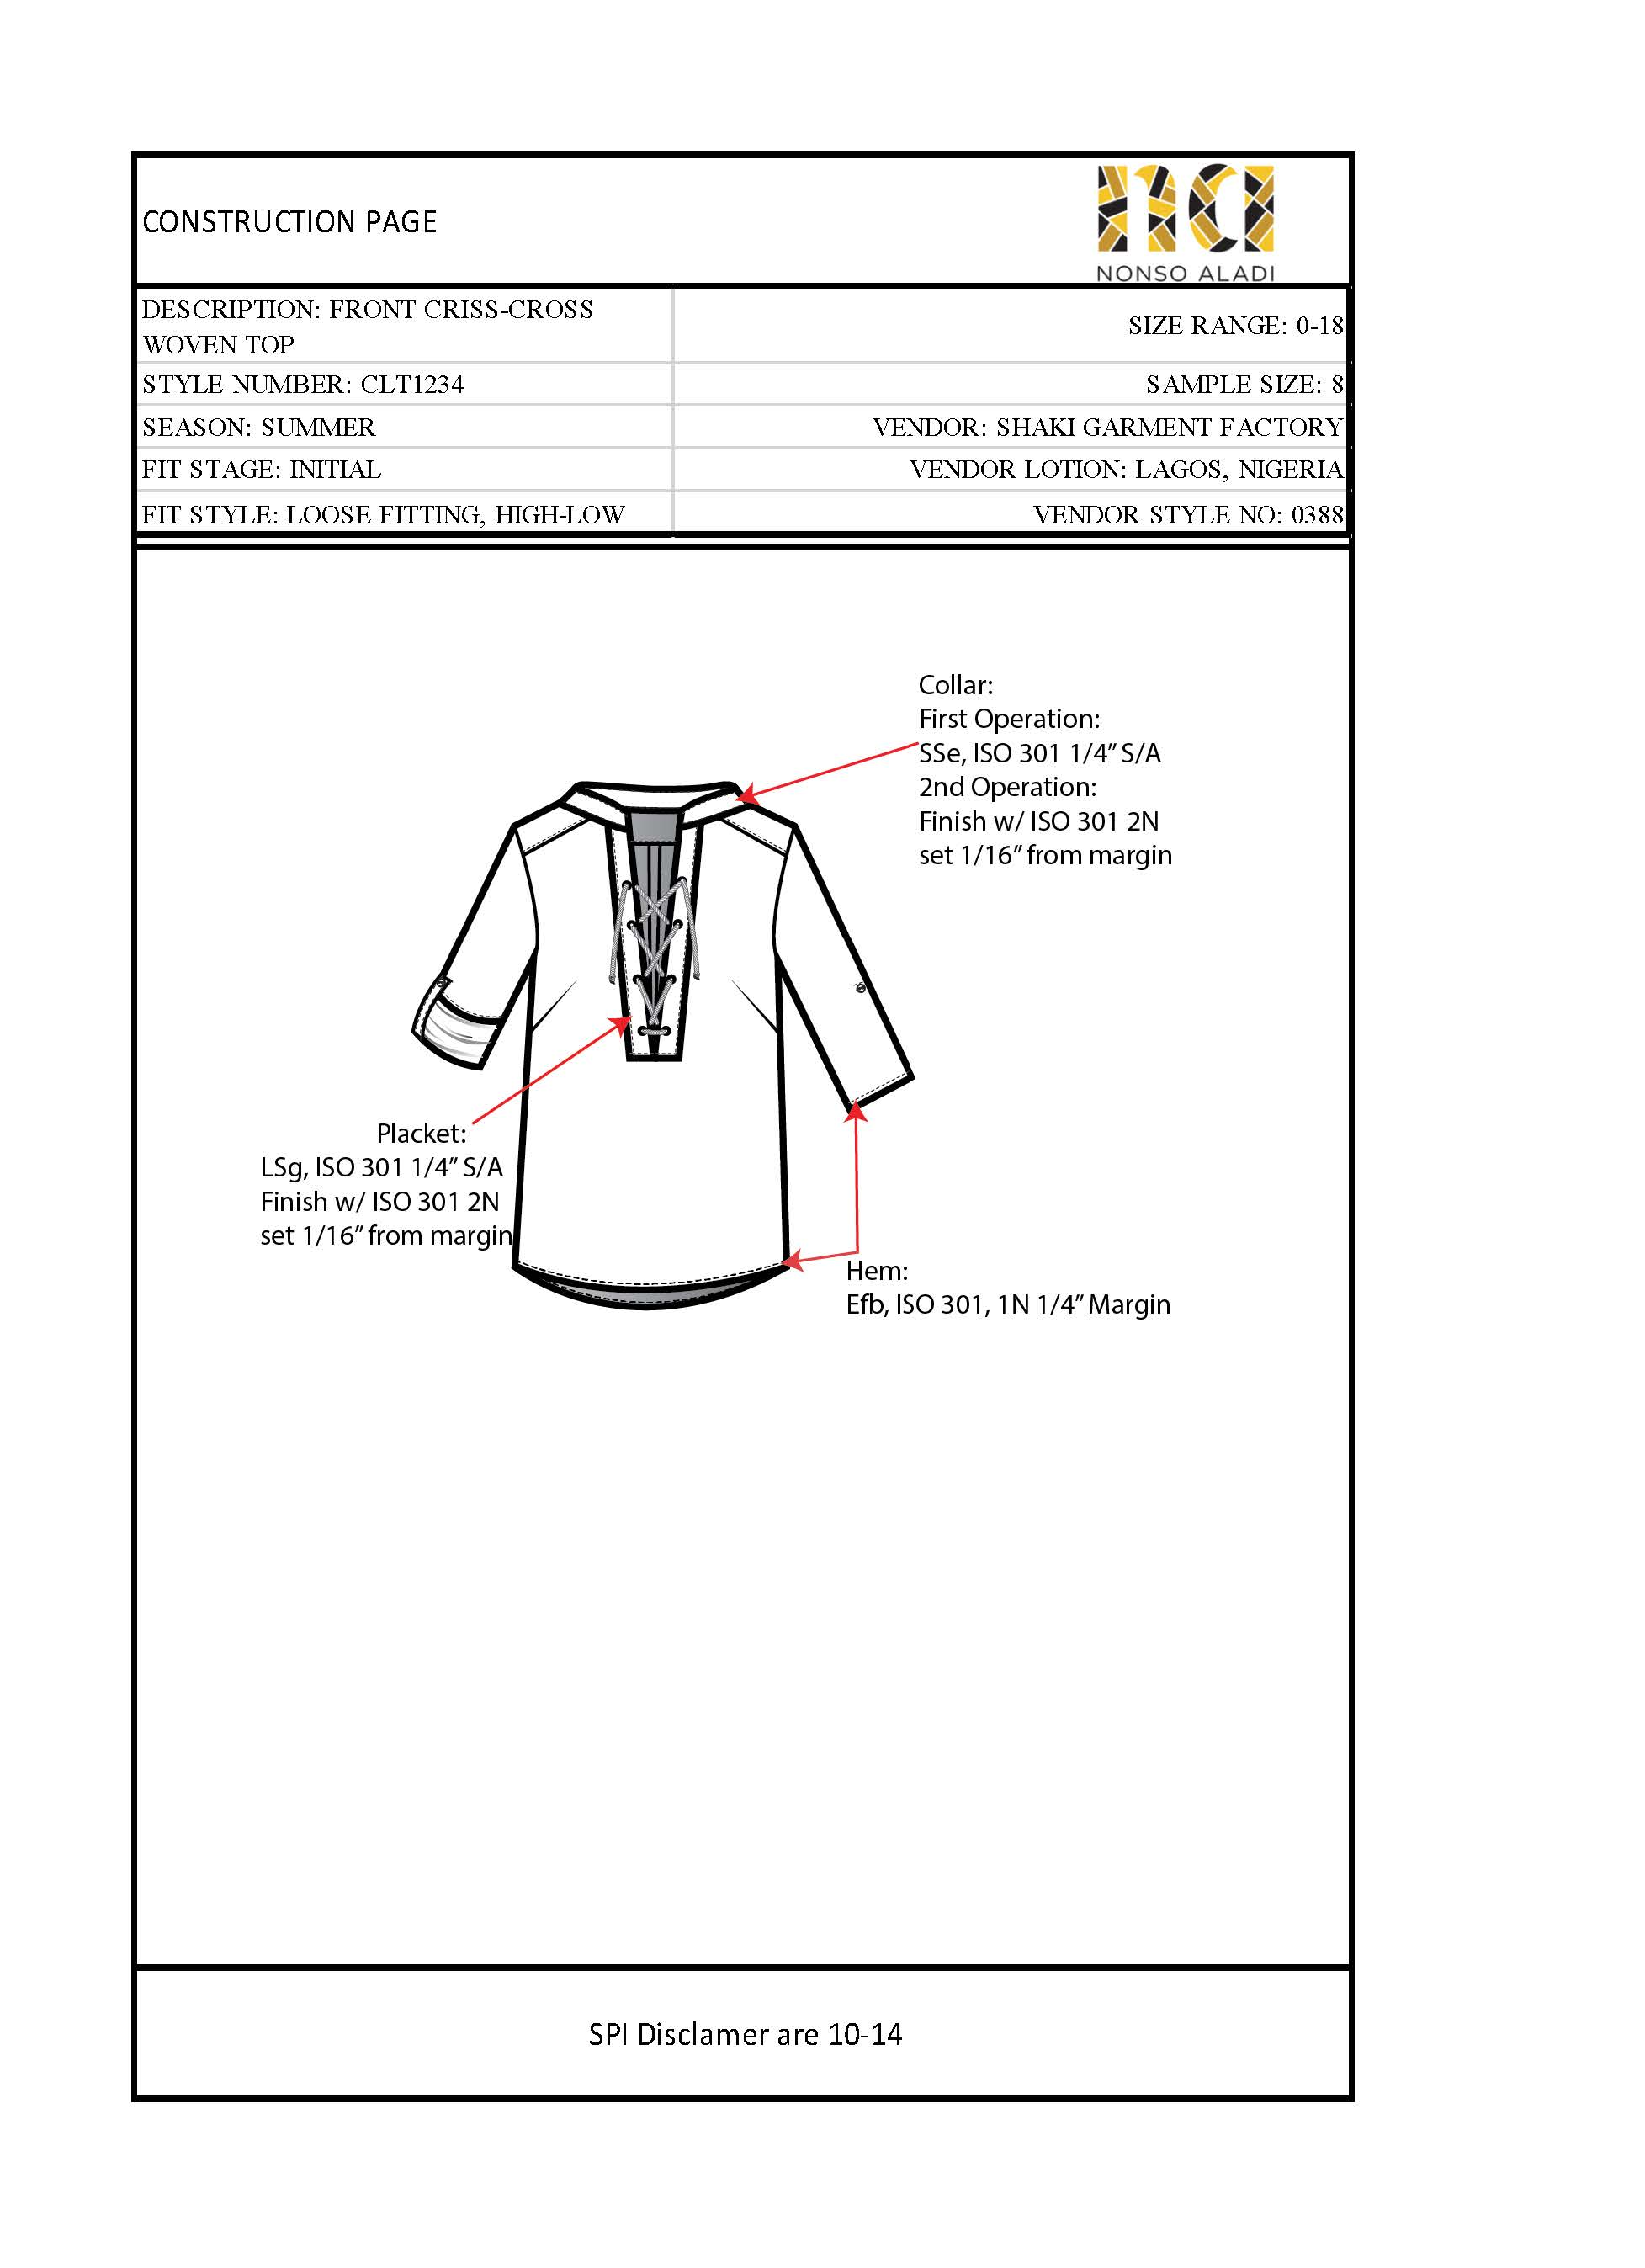 Blouse page_Page_06.jpg